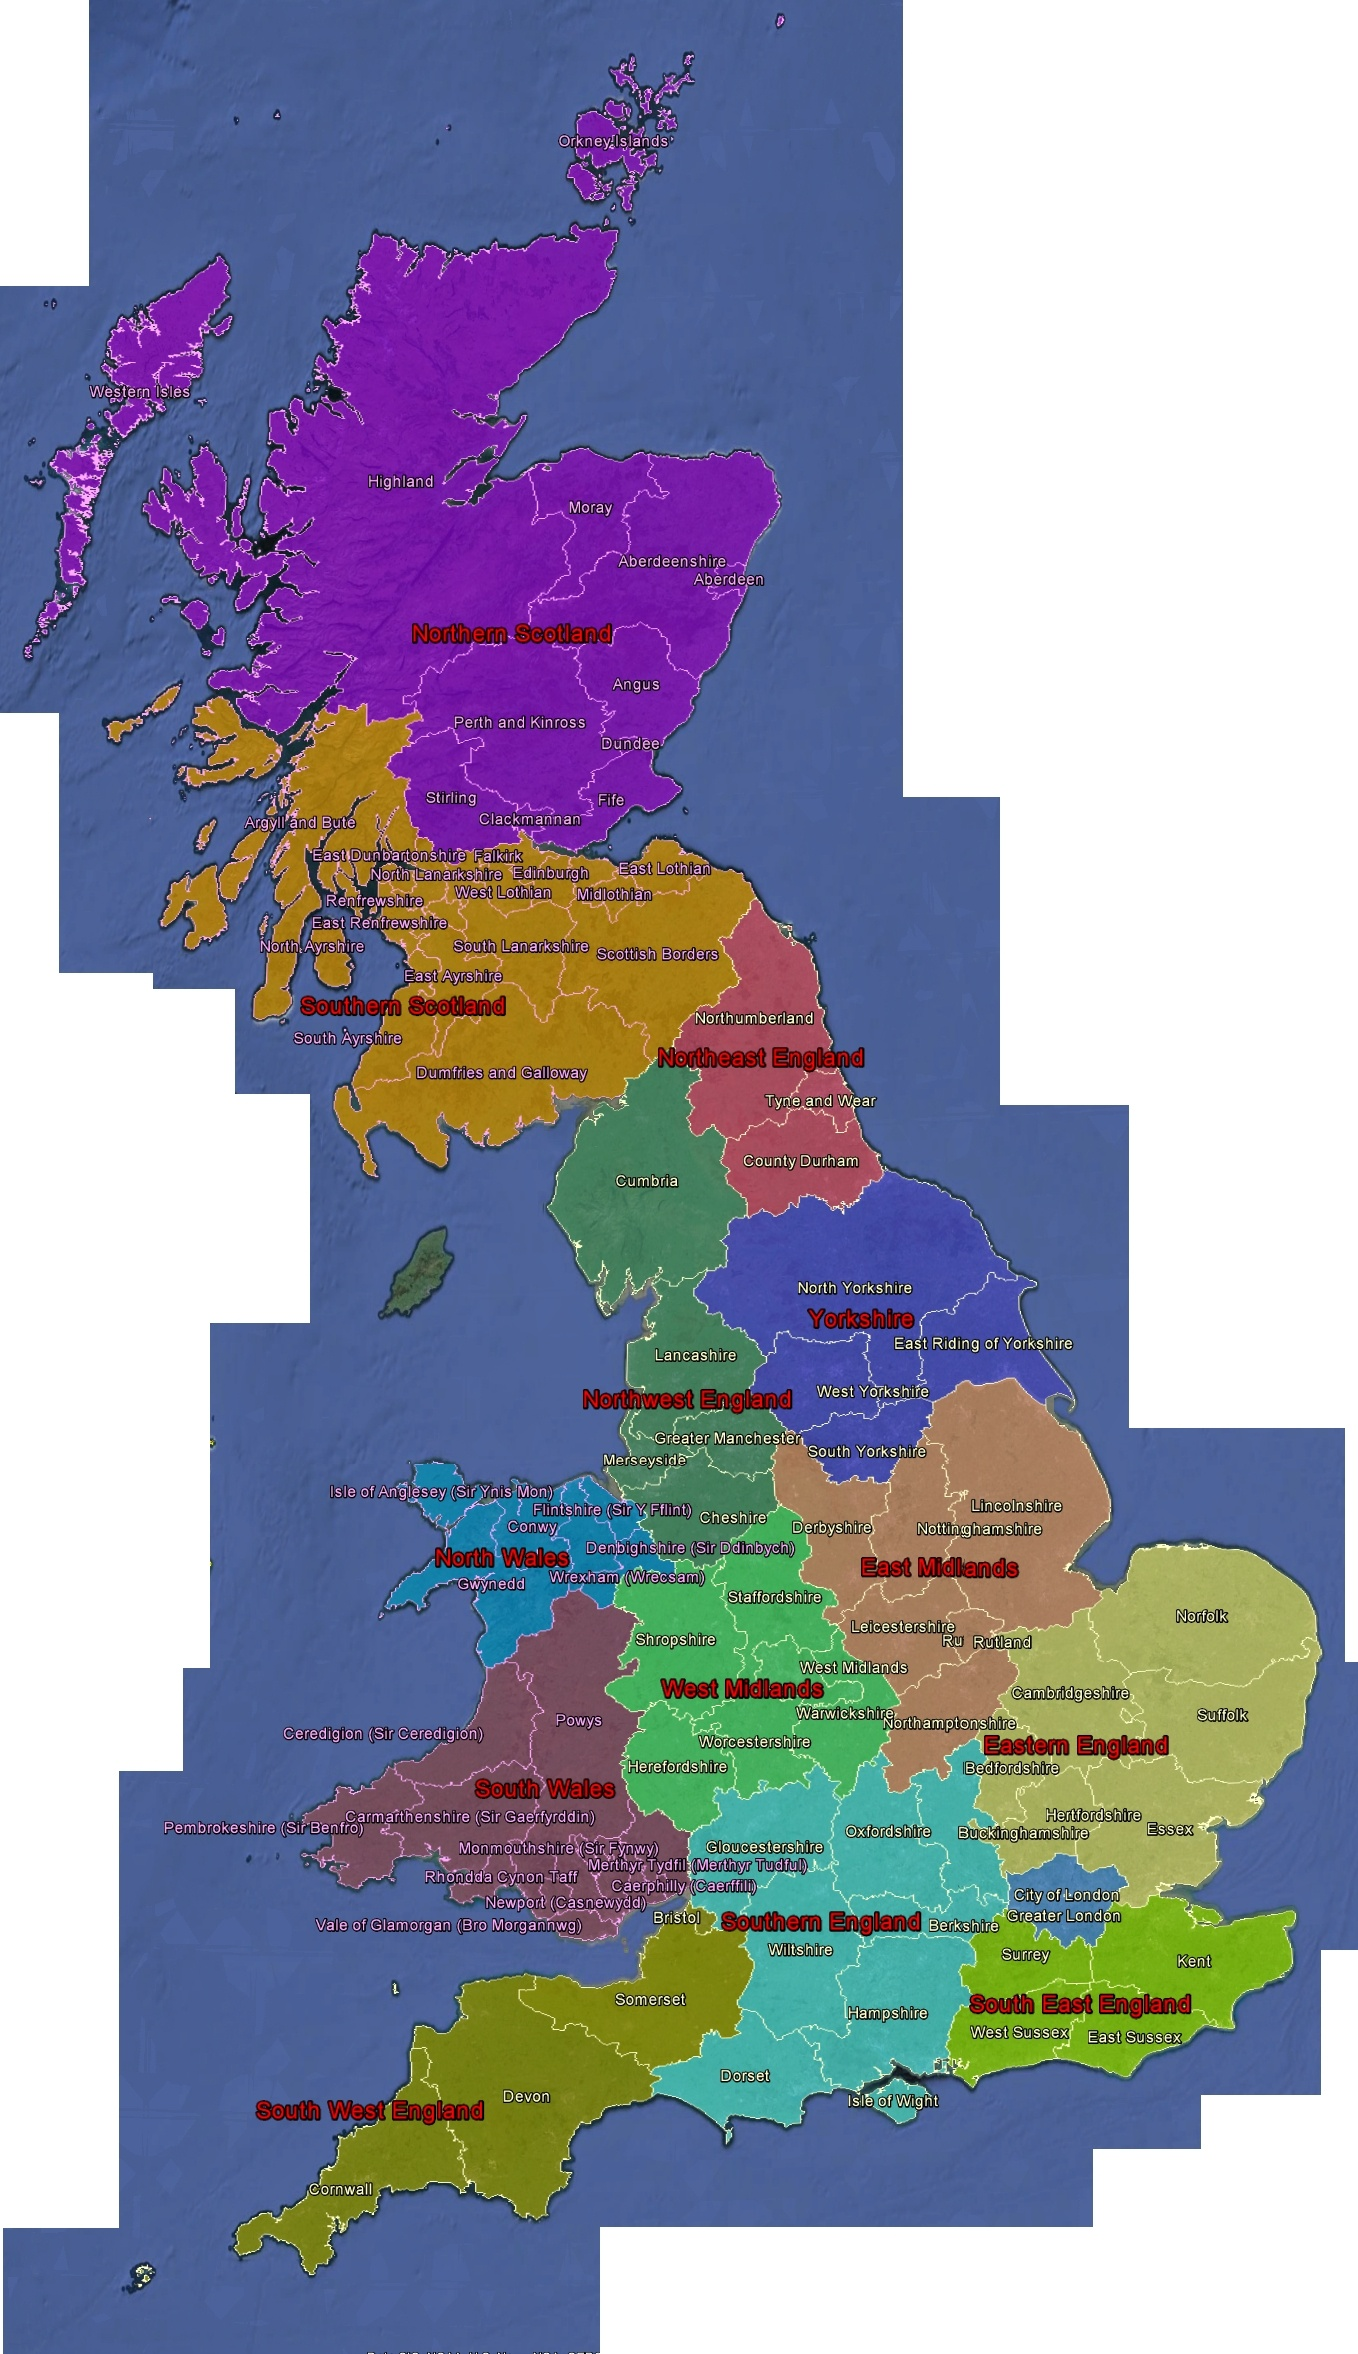 Map Of Uk With Regions.Uk Regional Map Geocaching Com Wiki Geocaching Wiki